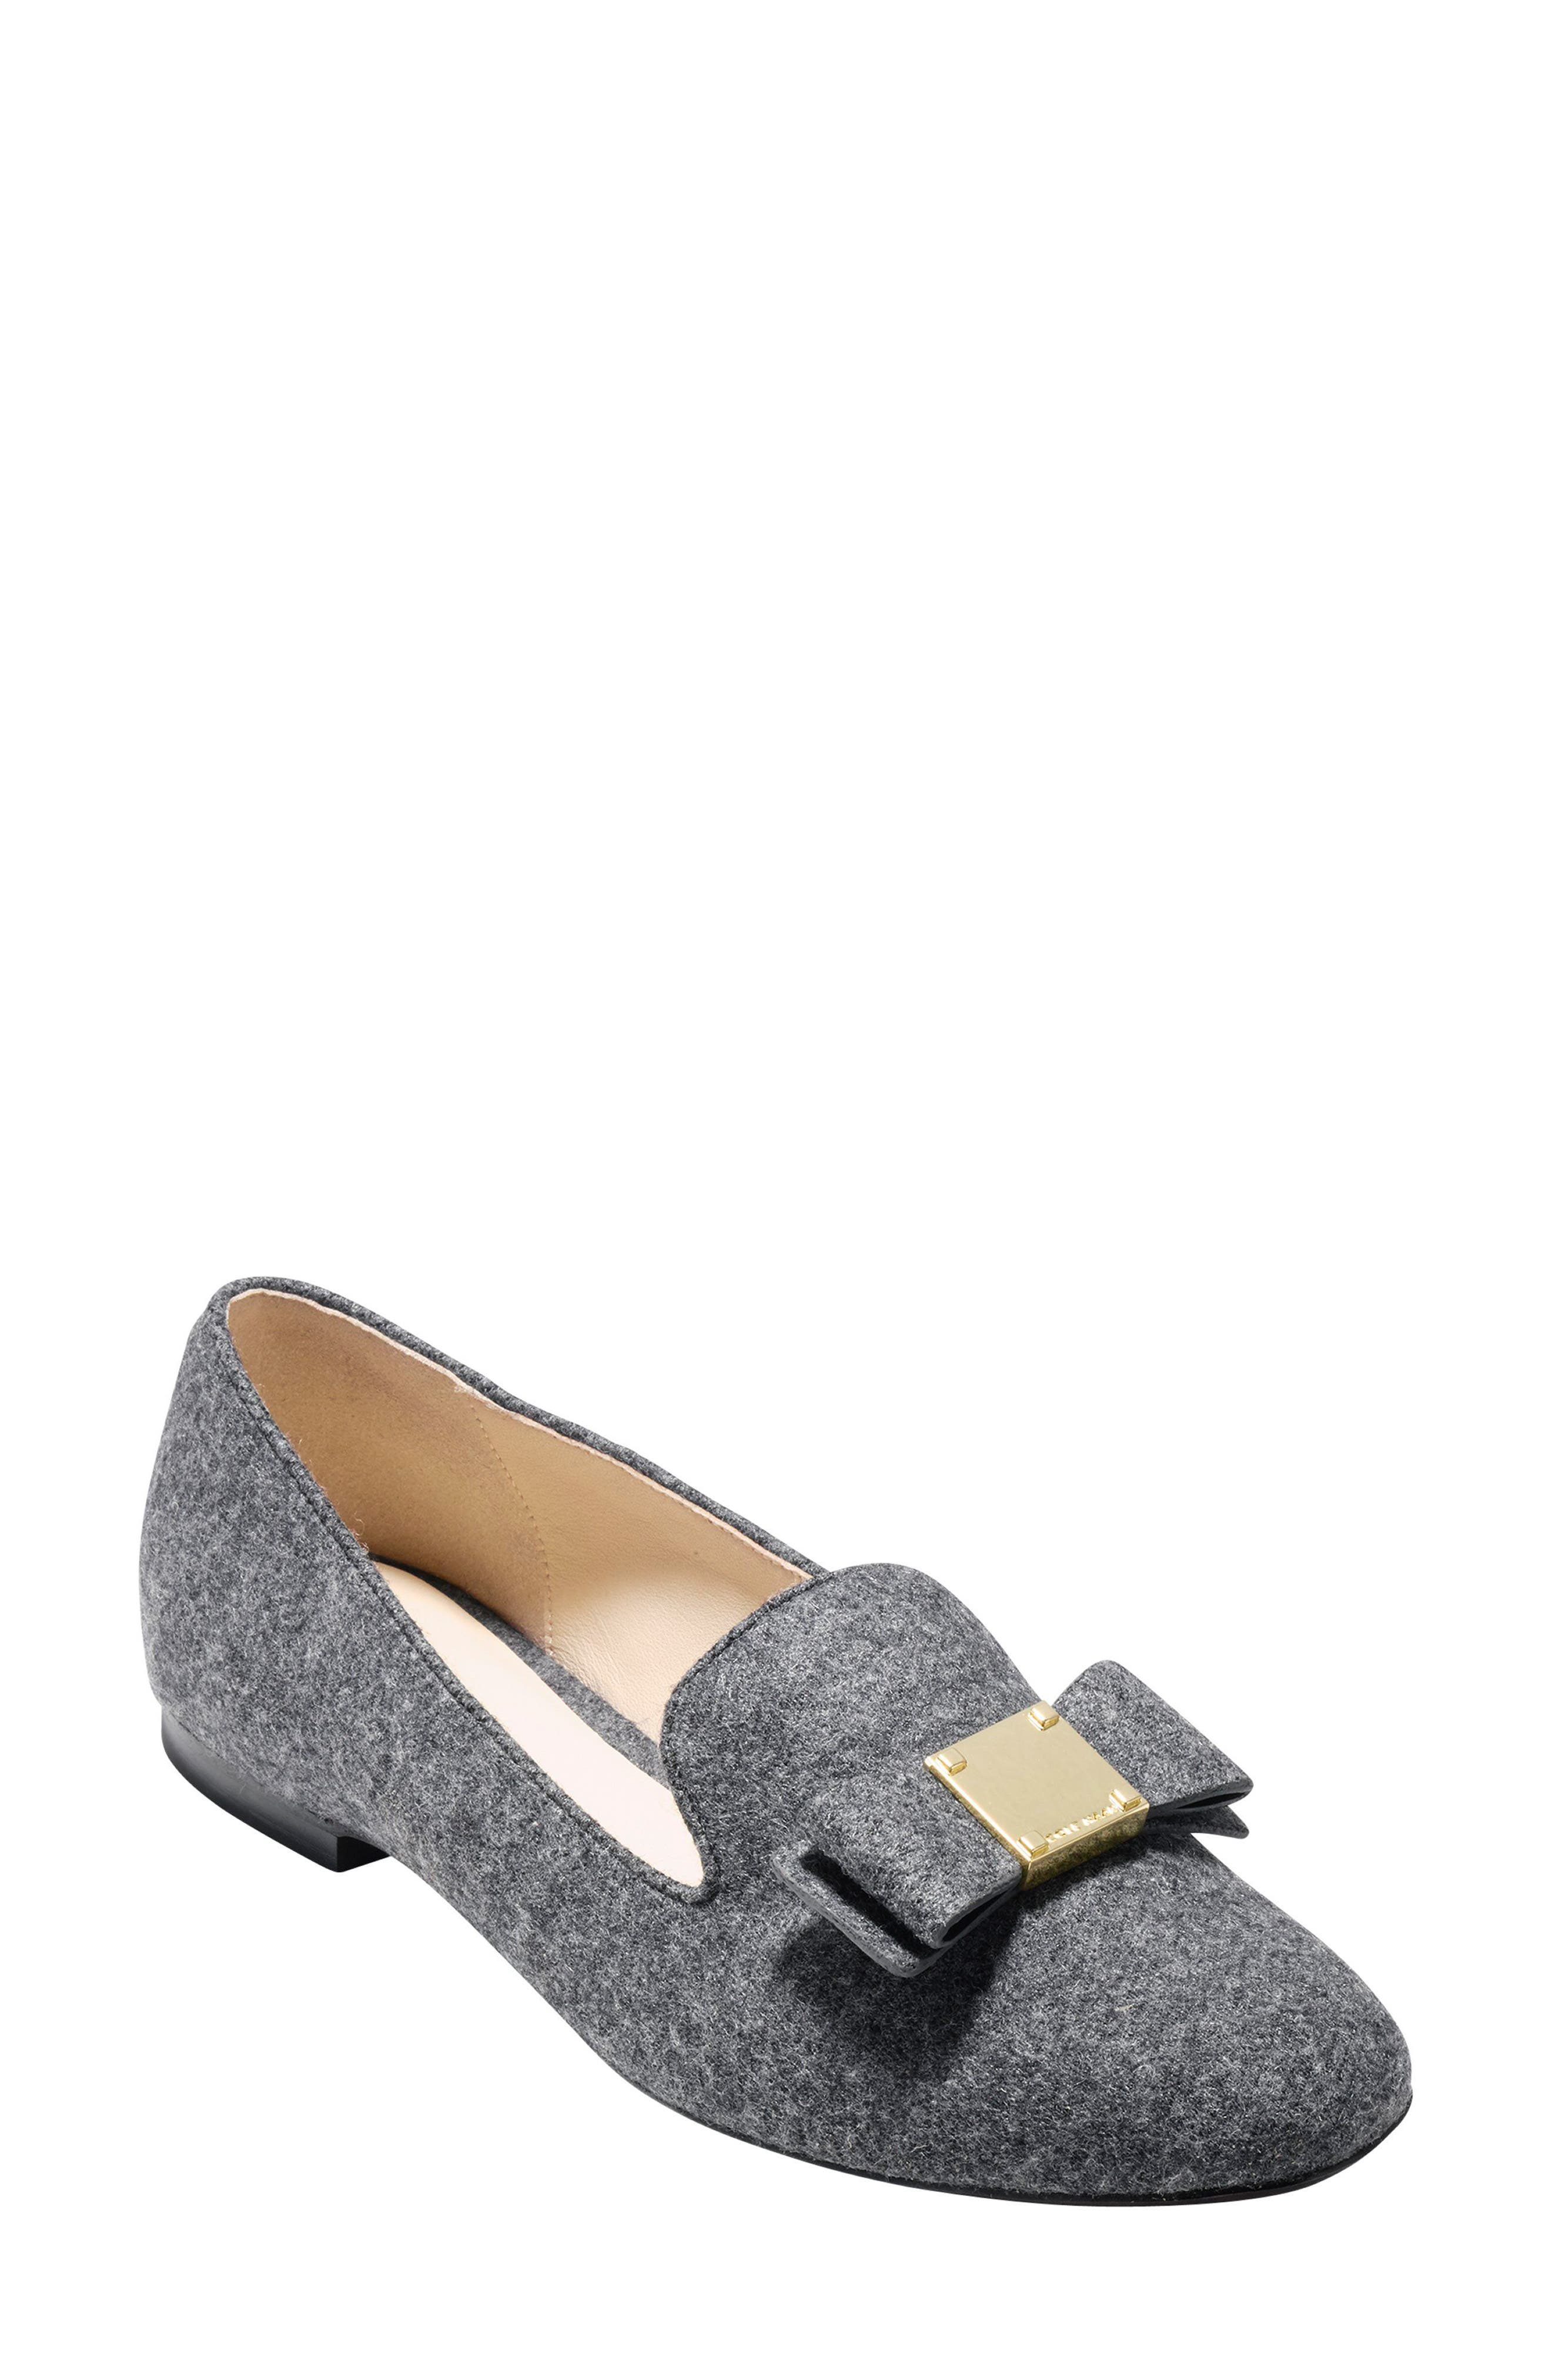 Tali Bow Loafer,                             Main thumbnail 1, color,                             Gray Flannel